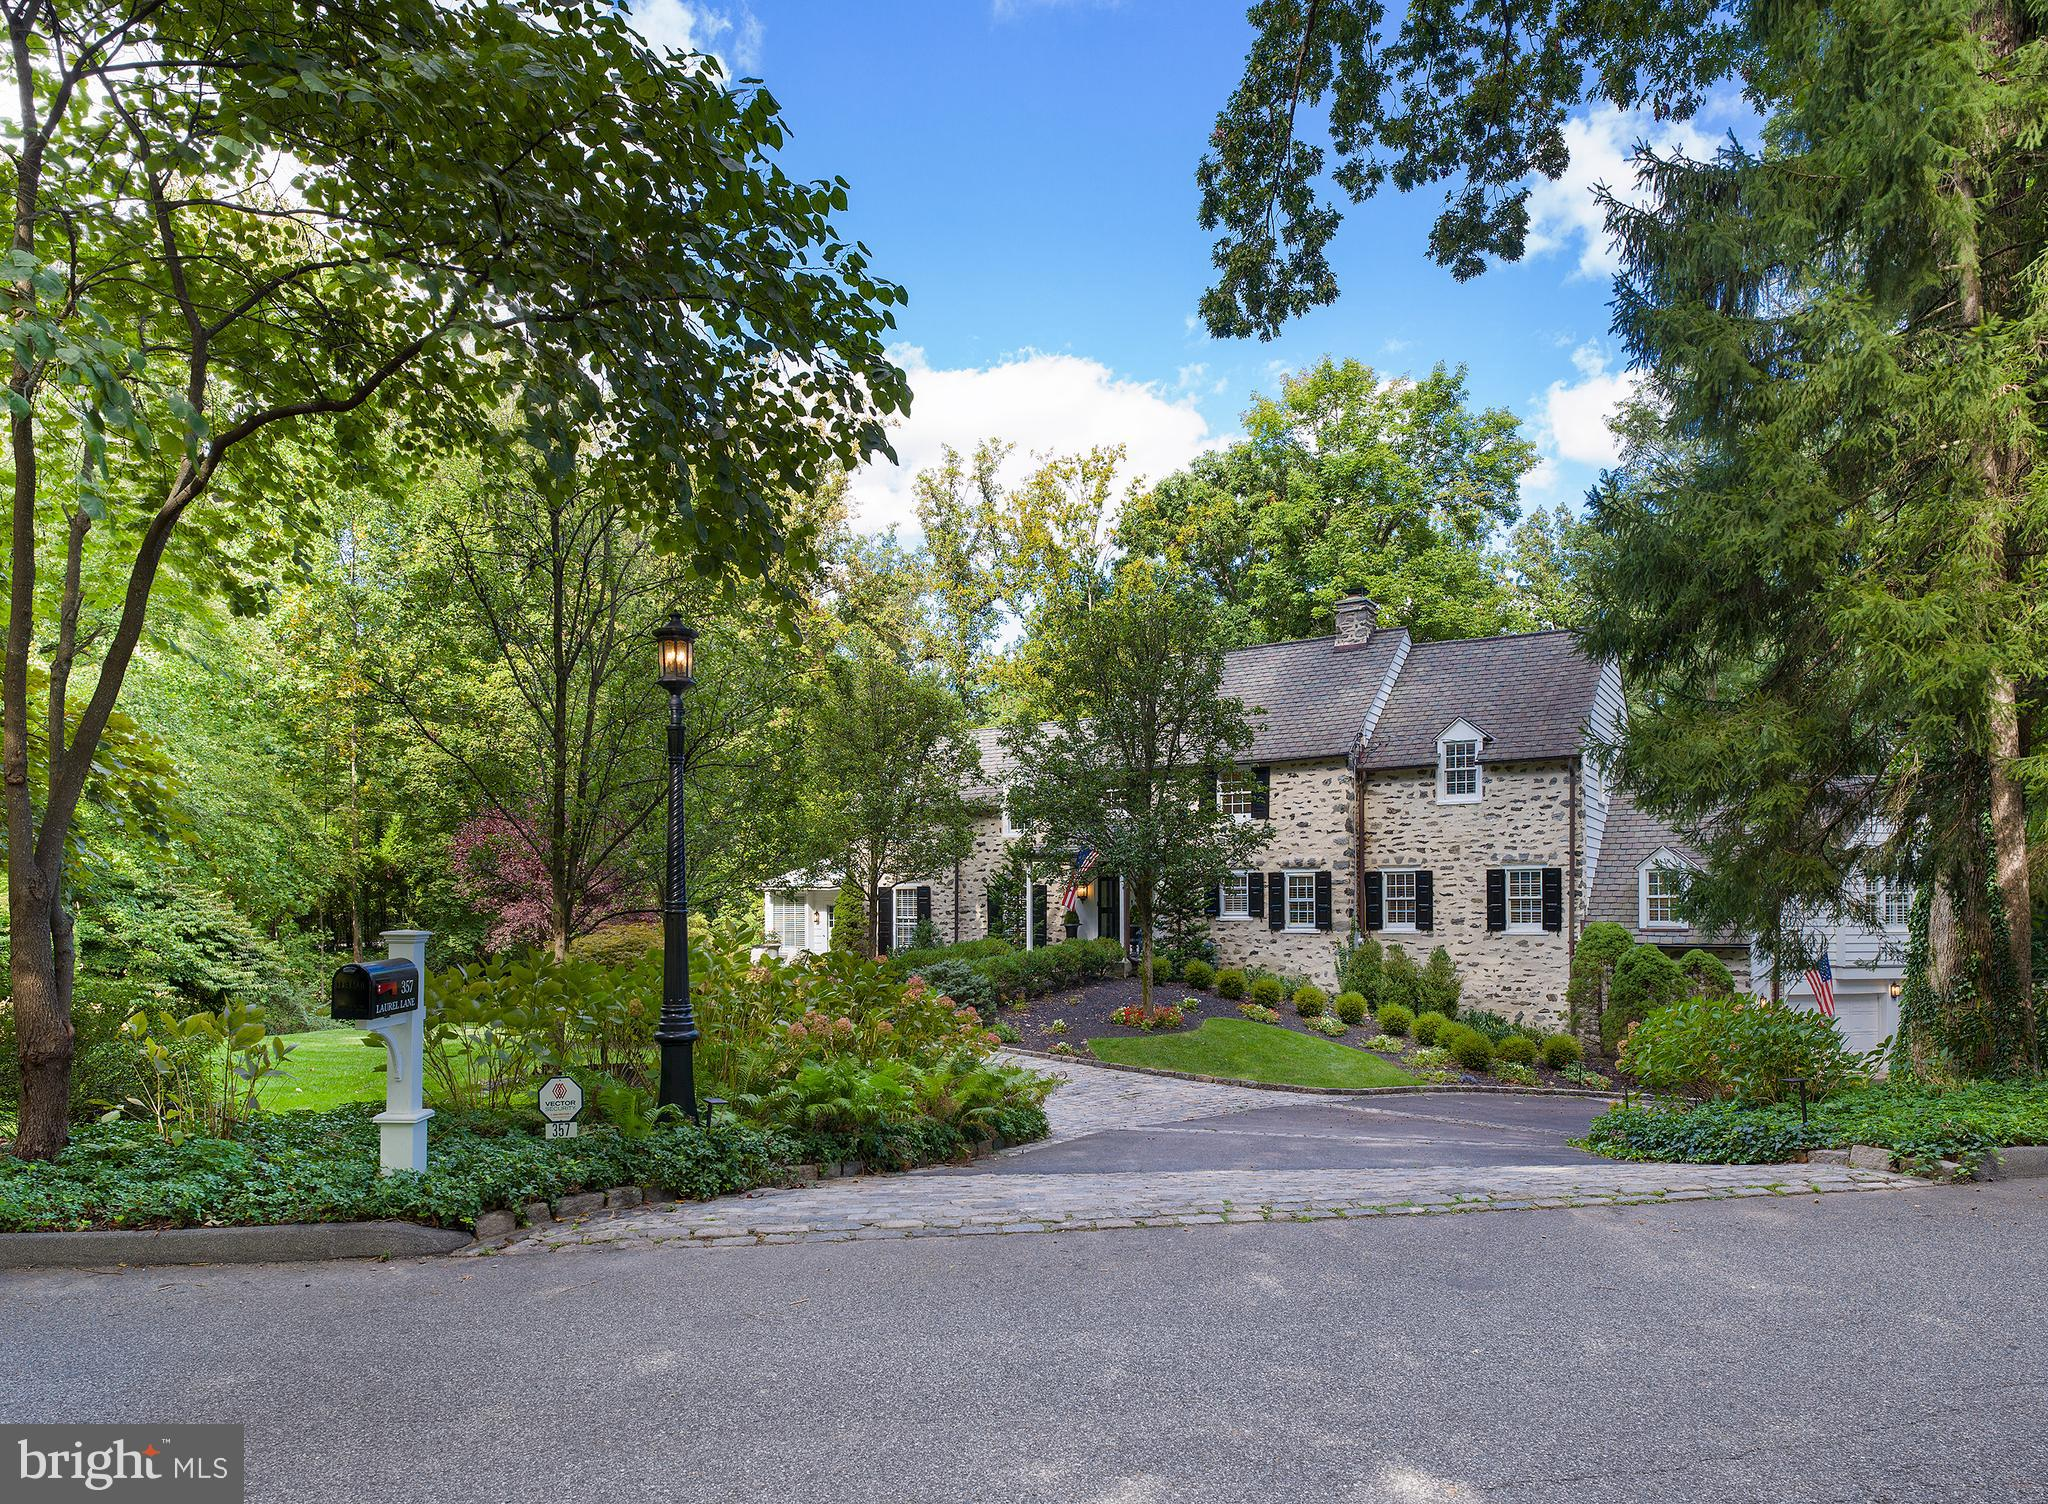 Welcome to this quintessential Main line home in one of the most sought-after neighborhoods in the Philadelphia suburbs. This Walter Durham center hall colonial with upgraded over-pointing mortar work, mature and lush landscaping, and touches of cobblestone and slate welcomes you with open arms.  Upon entering, take in the sheer elegance with its luxurious millwork, large rambling rooms with deep windowsills, 4 fireplaces, built-ins and restored original random width pegged floors. Although traditional, the newly renovated kitchen with open concept family room speaks to the carefully crafted Fred Bissinger addition adding modern conveniences for a truly updated experience. A brand-new laundry room, as well as a first-floor study is among this home's other attributes. The light filled second floor is open and oversized feeling elegant and extravagant. The main bedroom suite with fireplace and large walk-in closet is a private oasis, and the two large jack and jill bedrooms with adjoining bathroom is accommodating and private. A bonus room on the first floor with full bathroom and large closet is a perfect fourth bedroom or guest suite if more space is needed. The finished lower level is truly a thing of beauty. The once summer kitchen is now a large open space with a walk-in fireplace, a bank of large windows overlooking the yard and Italian porcelain floors, perfect for those looking to entertain, or even create a multi-use space for everyday fun. Enjoy the newly renovated full bathroom on this floor and with TWO garages, both equipped with heating.  Walk-to location for restaurants, shopping, and the train, with easy access to center city, King of Prussia, and Conshohocken. Nothing has been spared for this well-appointed home. Home will be available for private showings starting 10/2/2021.